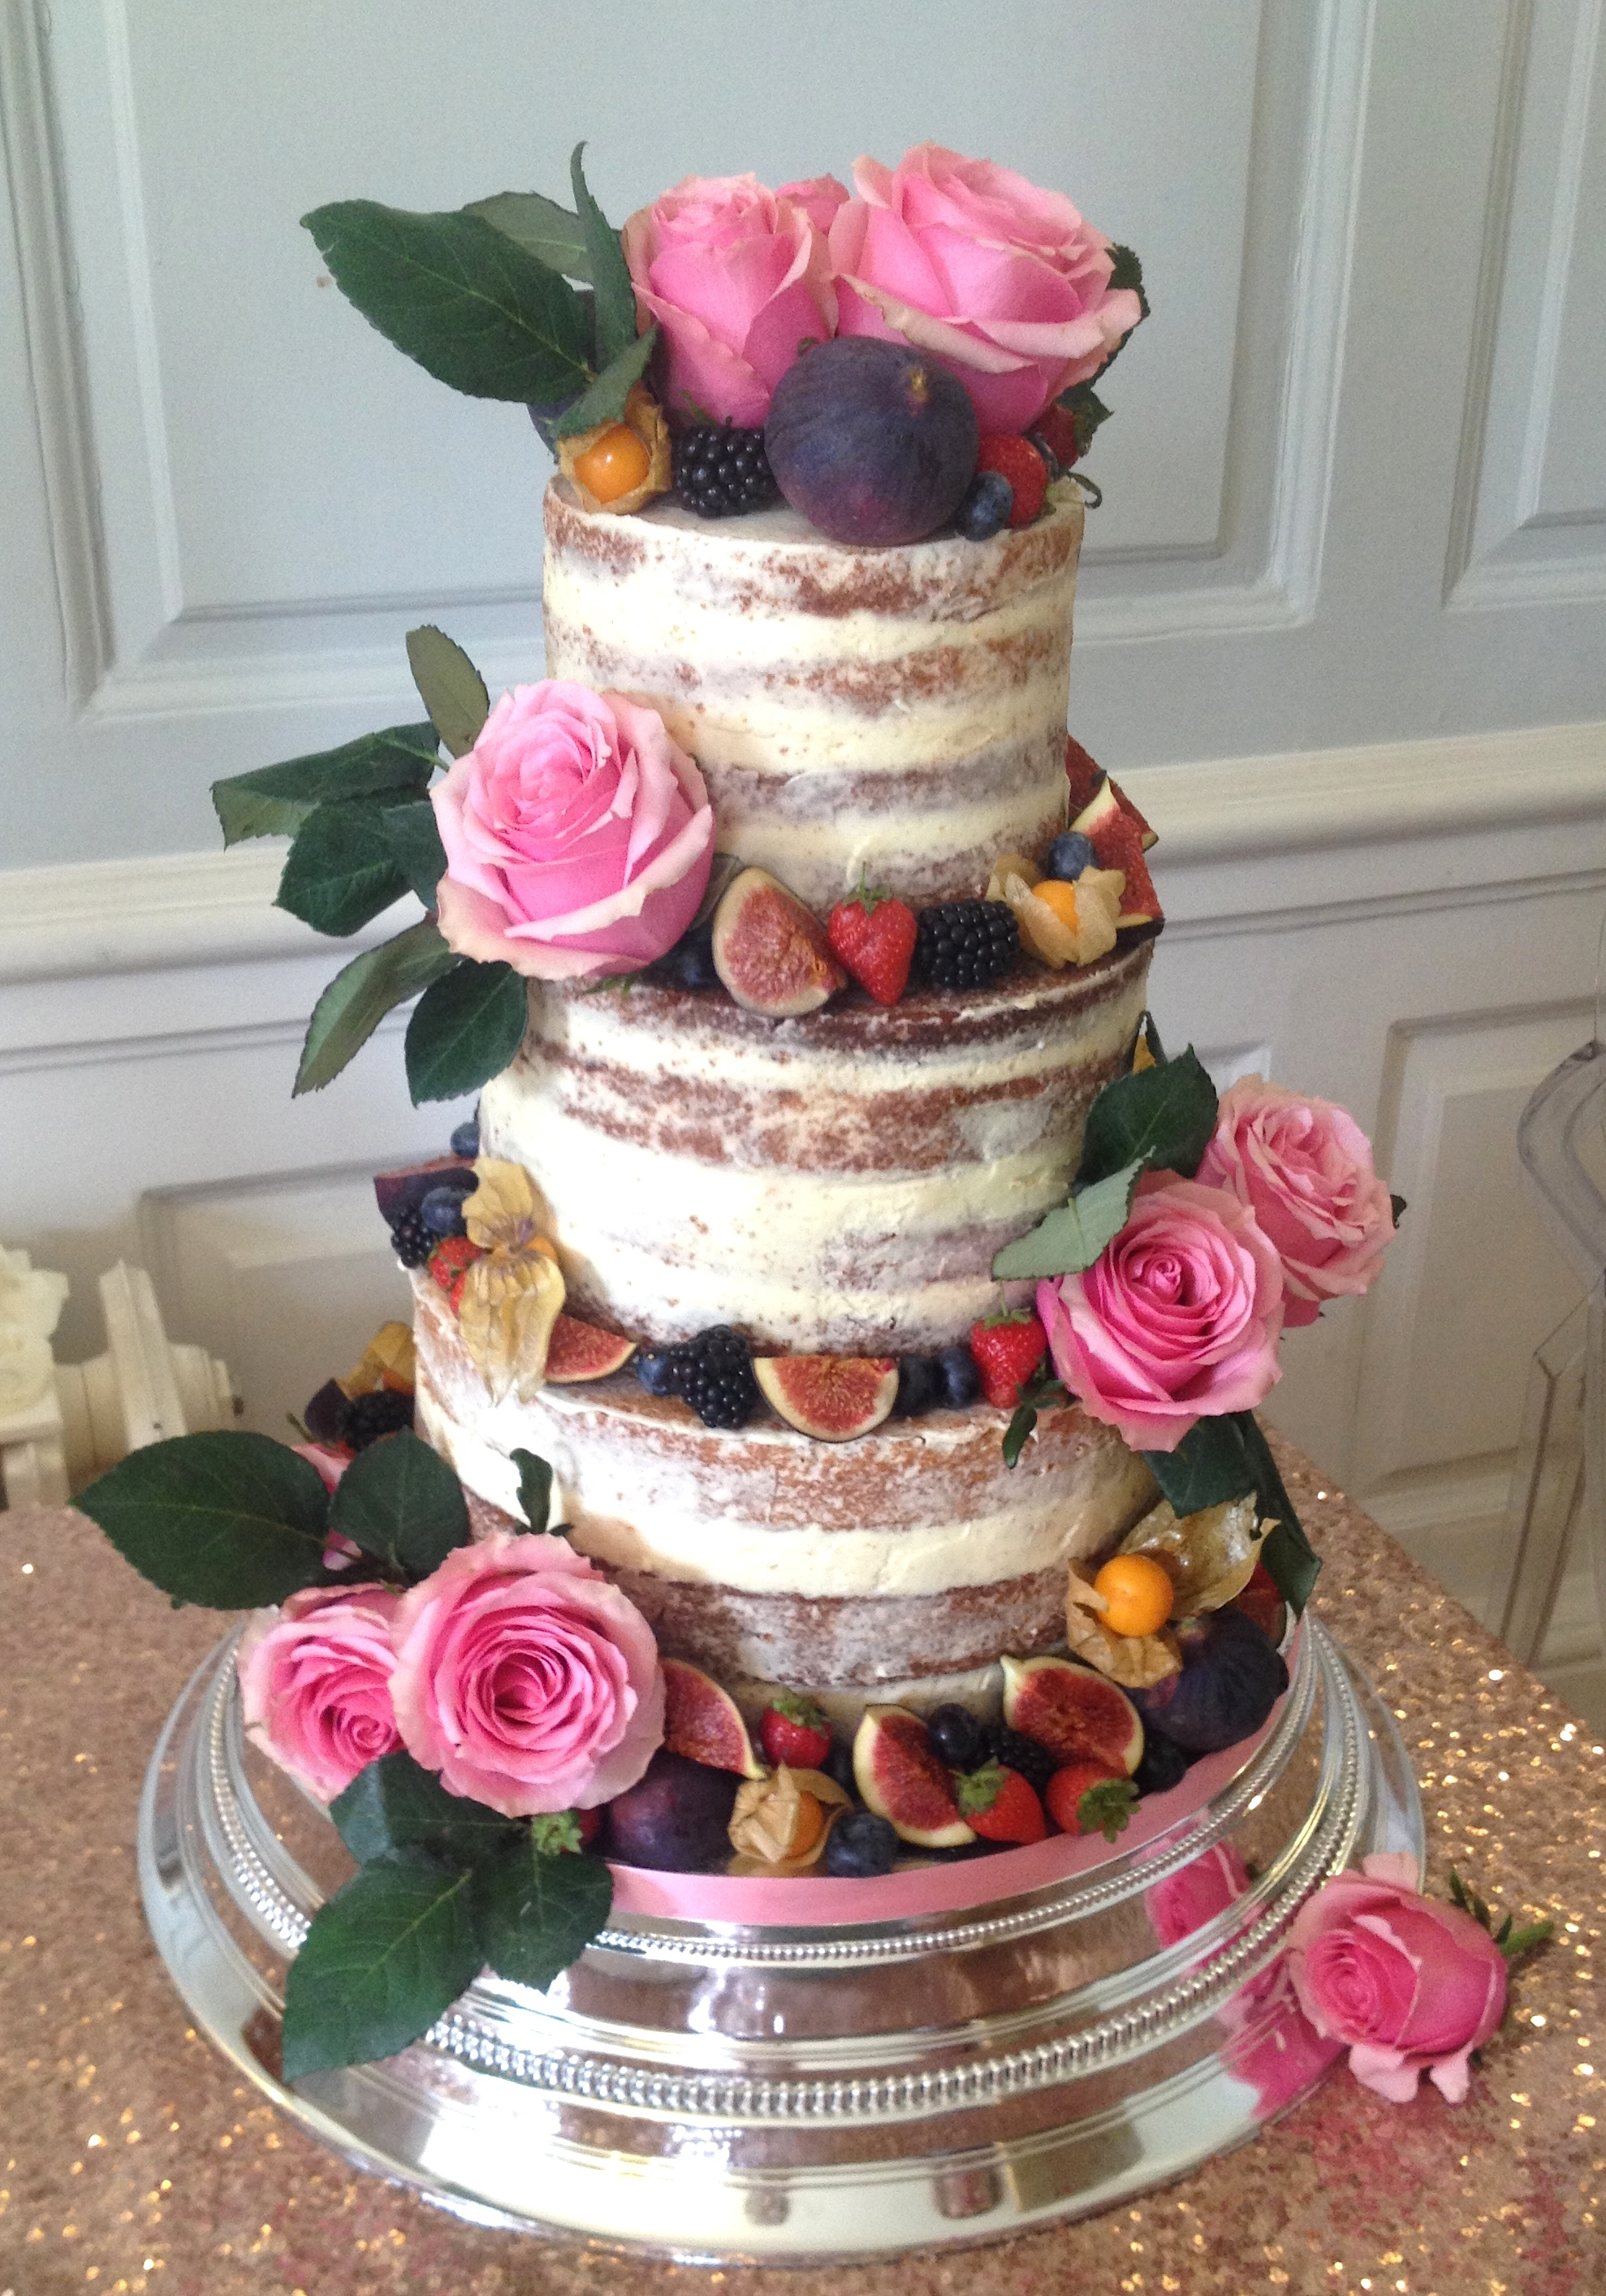 Naked Wedding Cake - pink rose